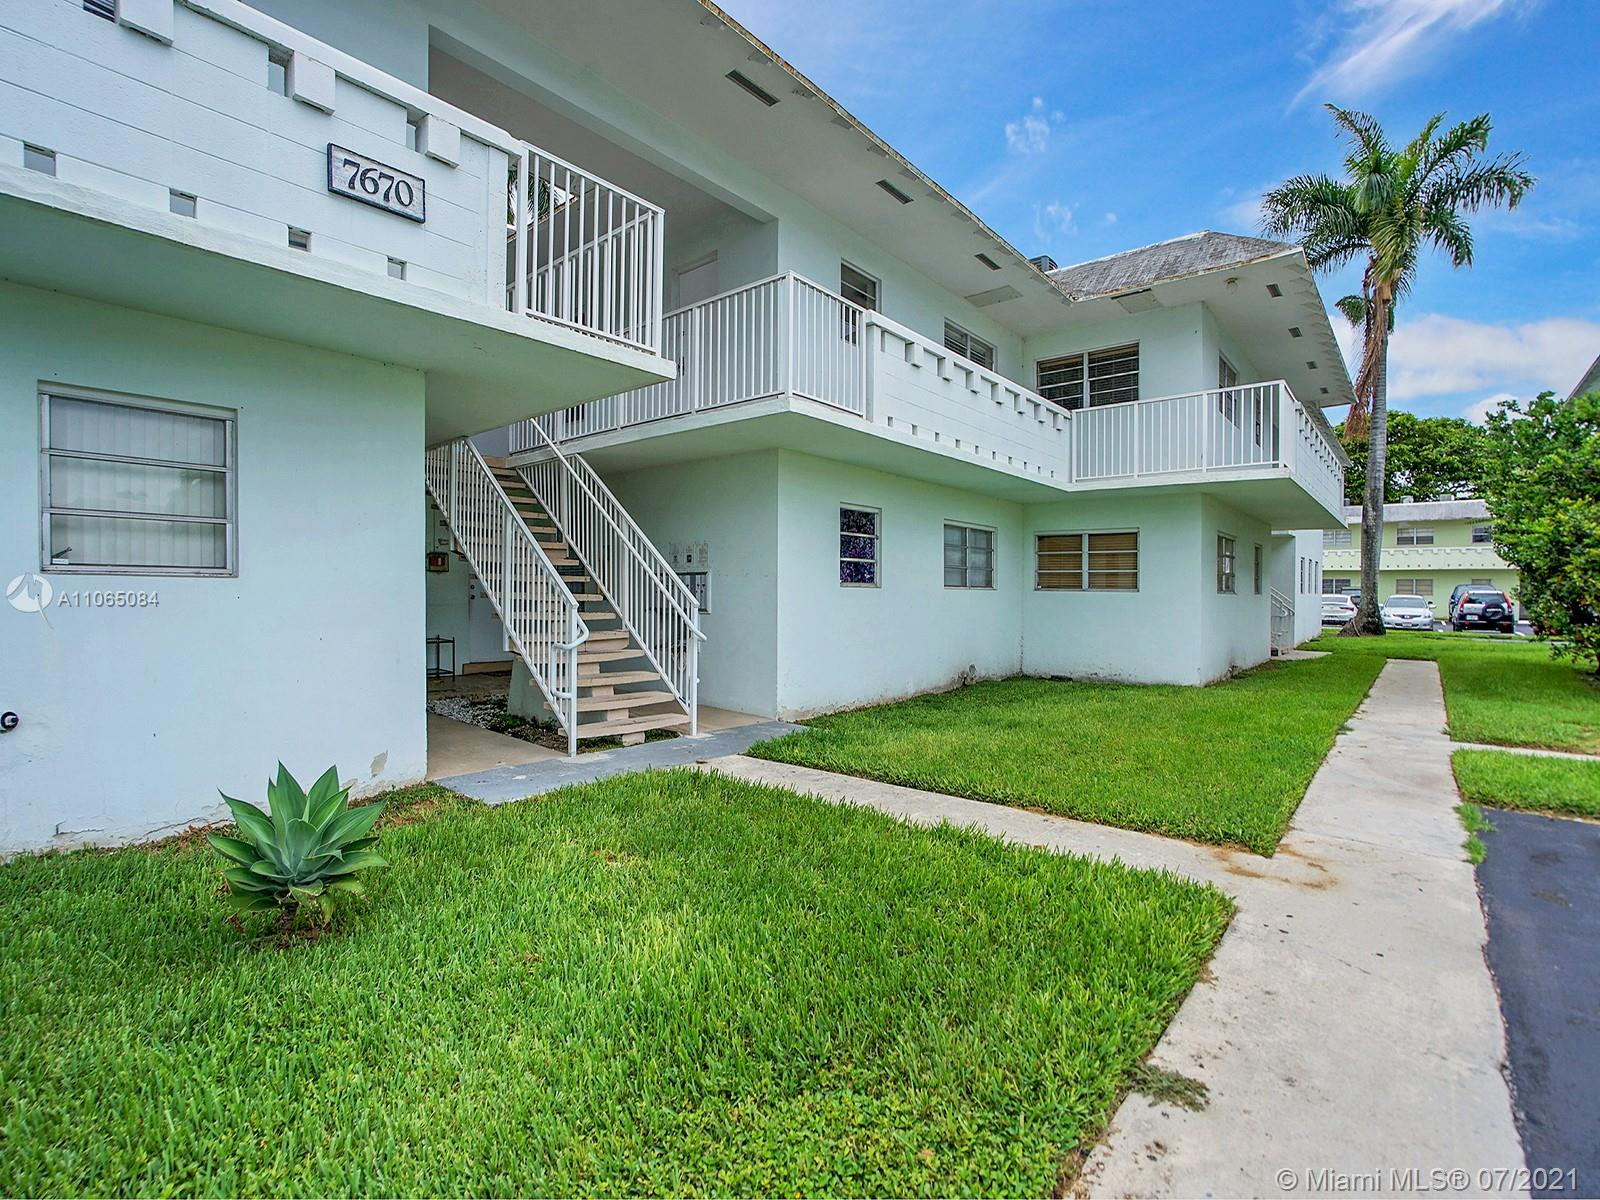 Wonderful investment opportunity for a 2 bedroom, 2 bathroom fully updated condo in the heart of Dadeland. Excellent location near major highways, Universities and Baptist Hospital. Walking distance to restaurants and Dadeland Mall. Washer and Dryer in unit!